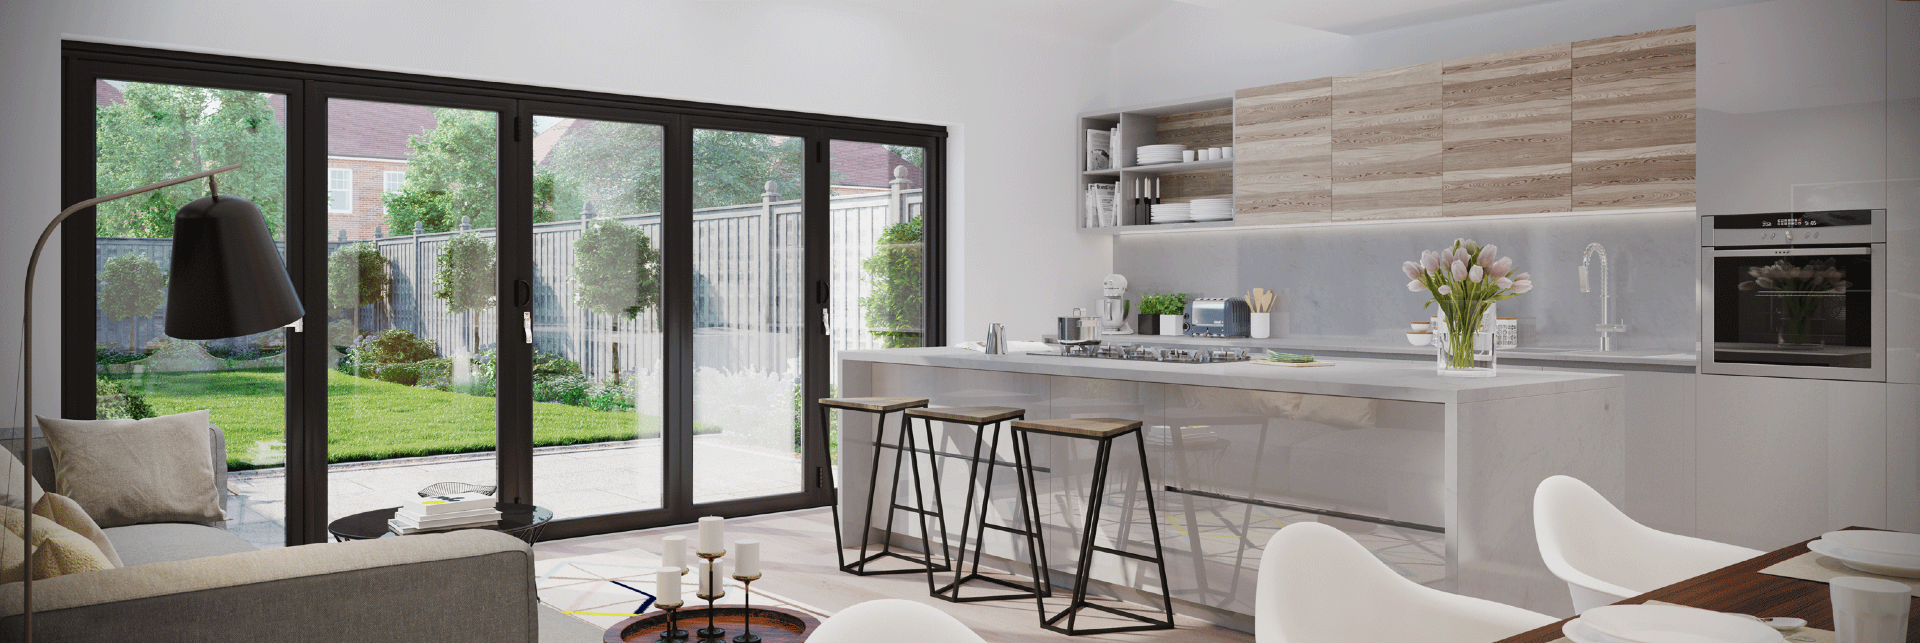 Beautiful Set Of Bi Folding Doors